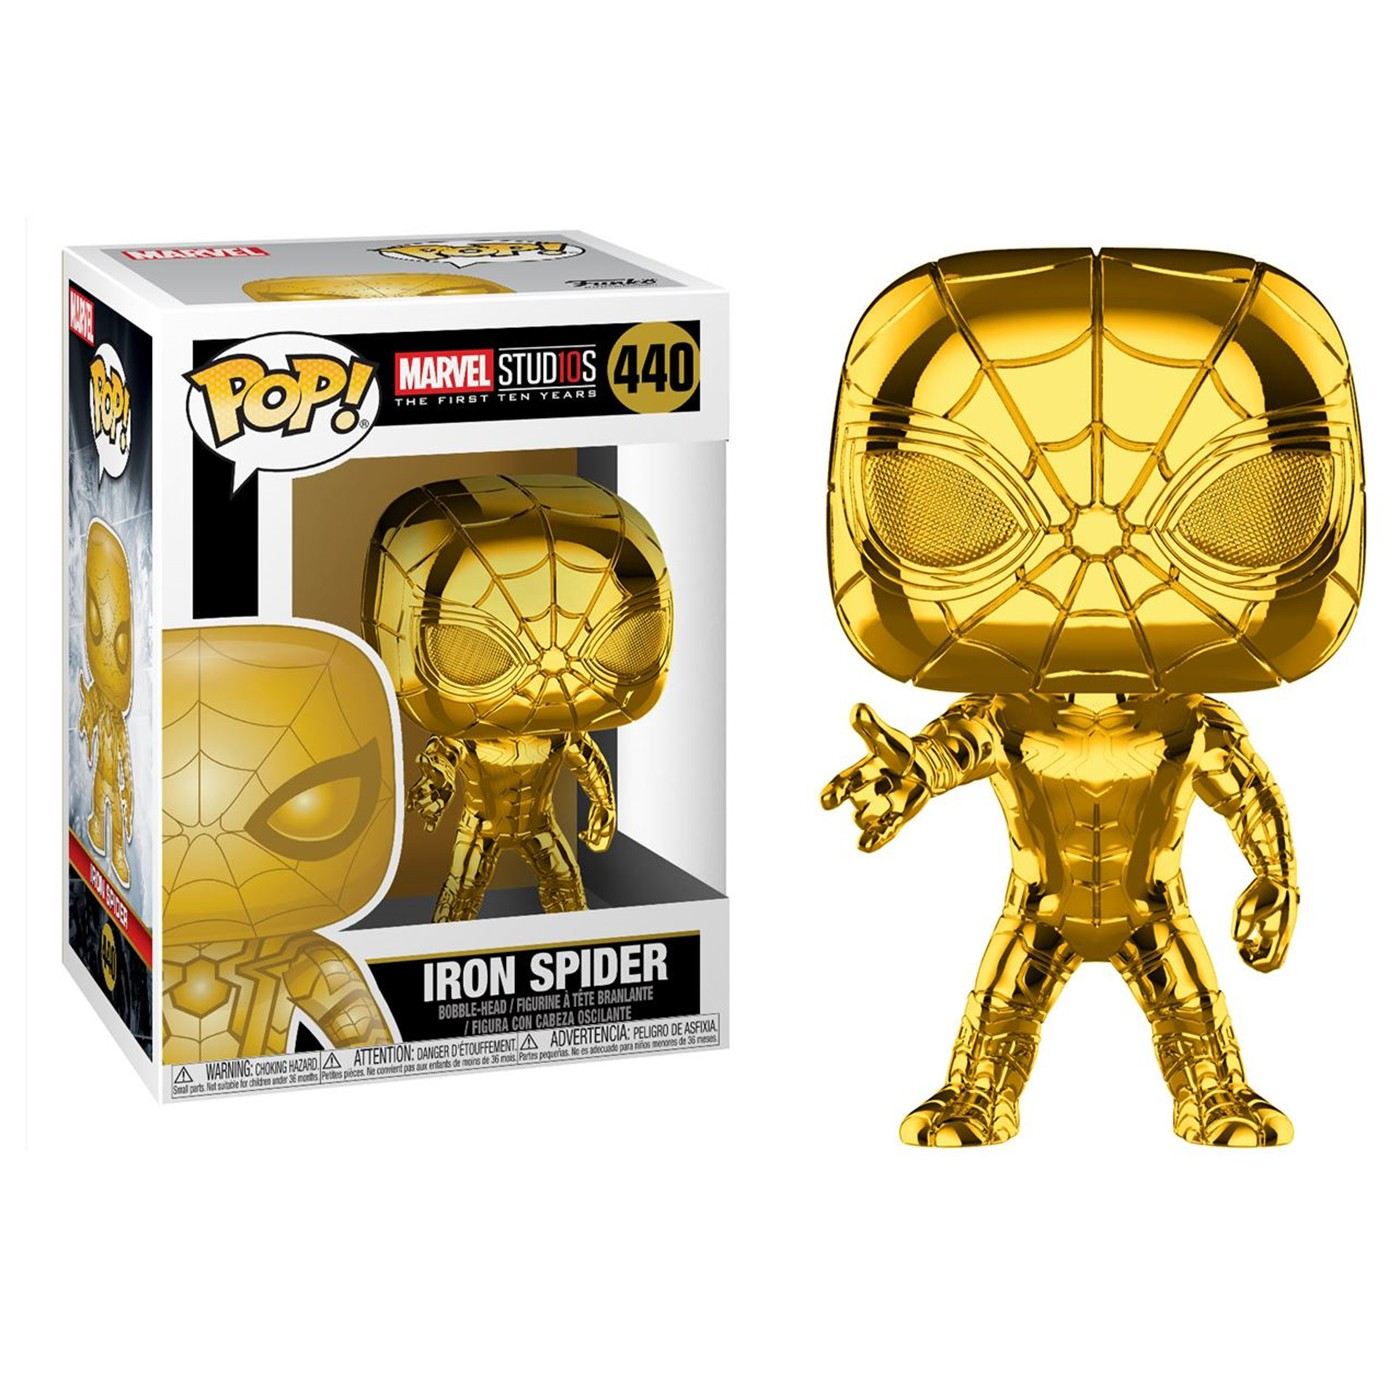 Pop! Marvel: MS 10 - Iron Spider Gold Bobblehead